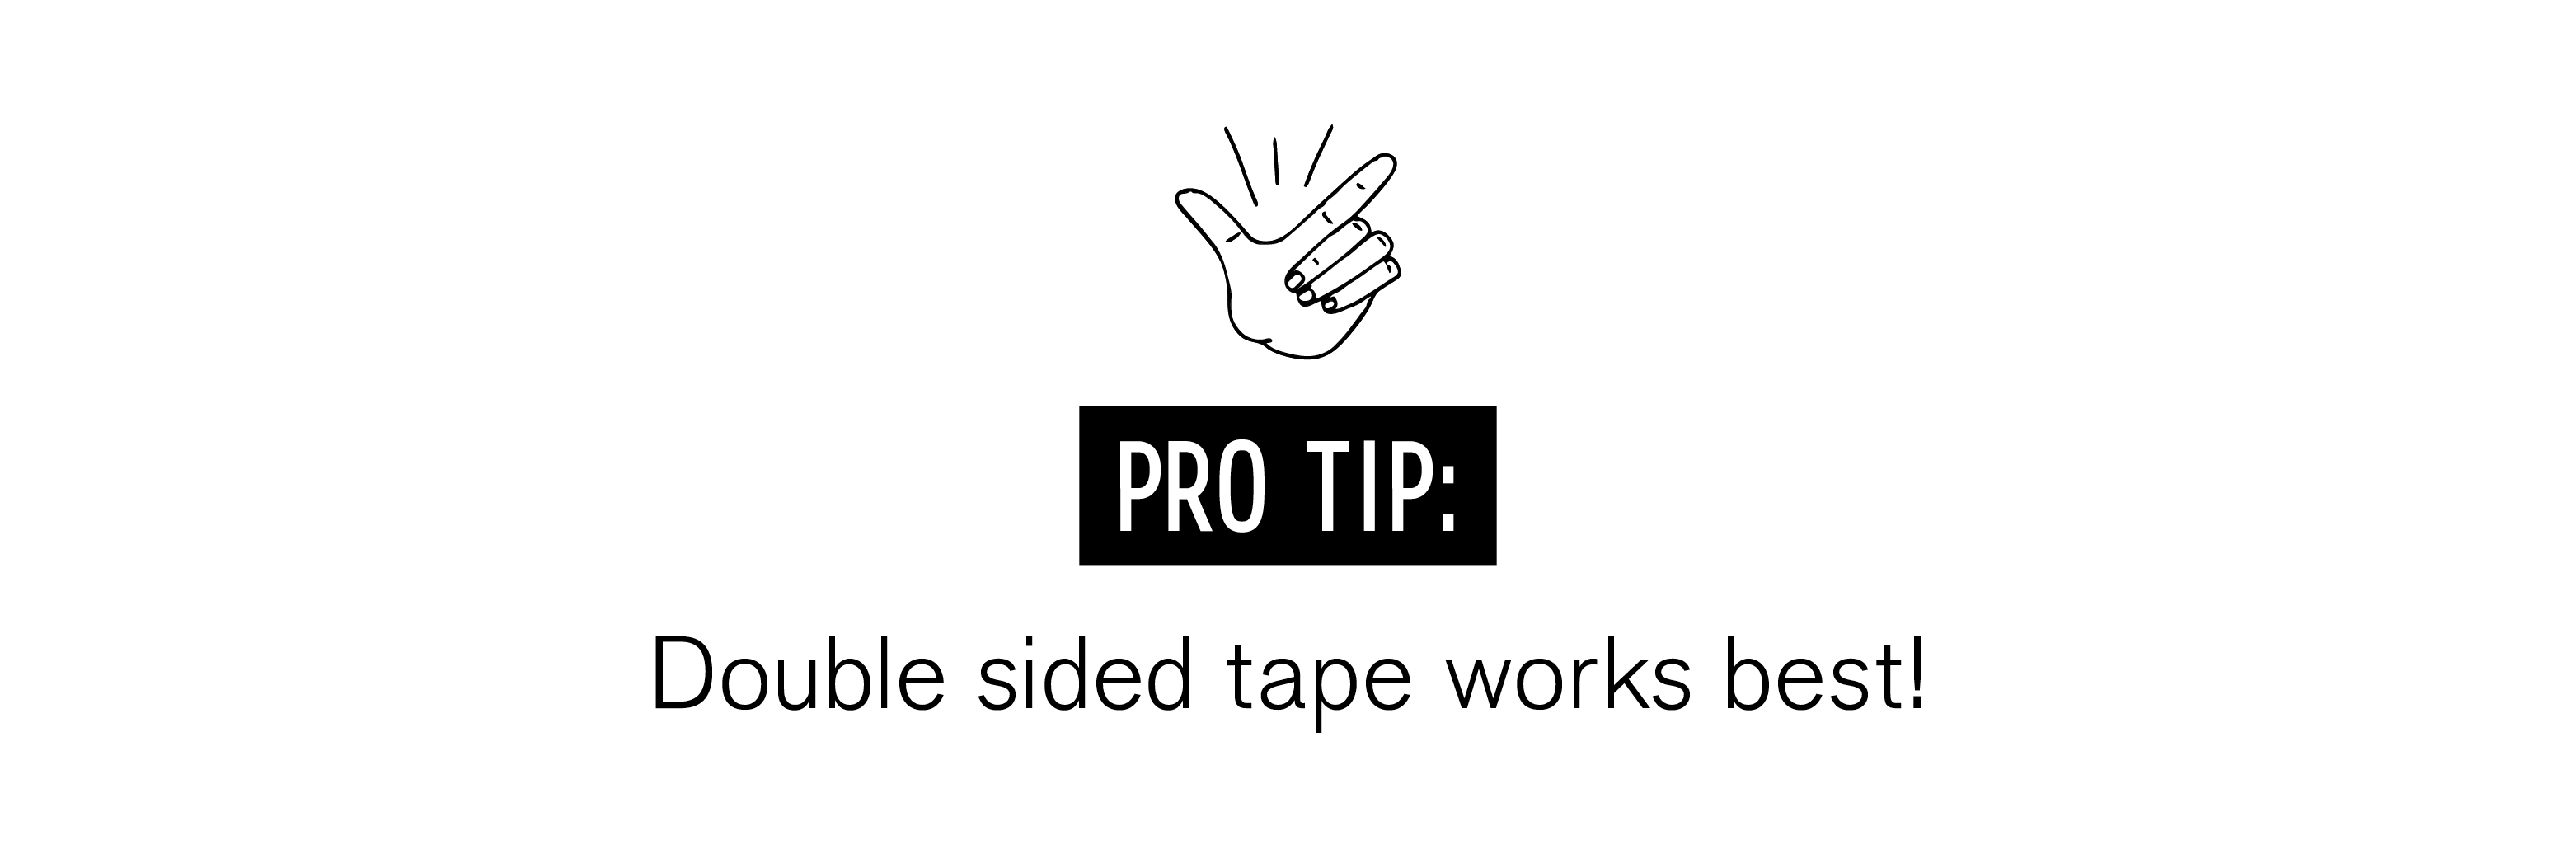 double-sided-tape-works-best